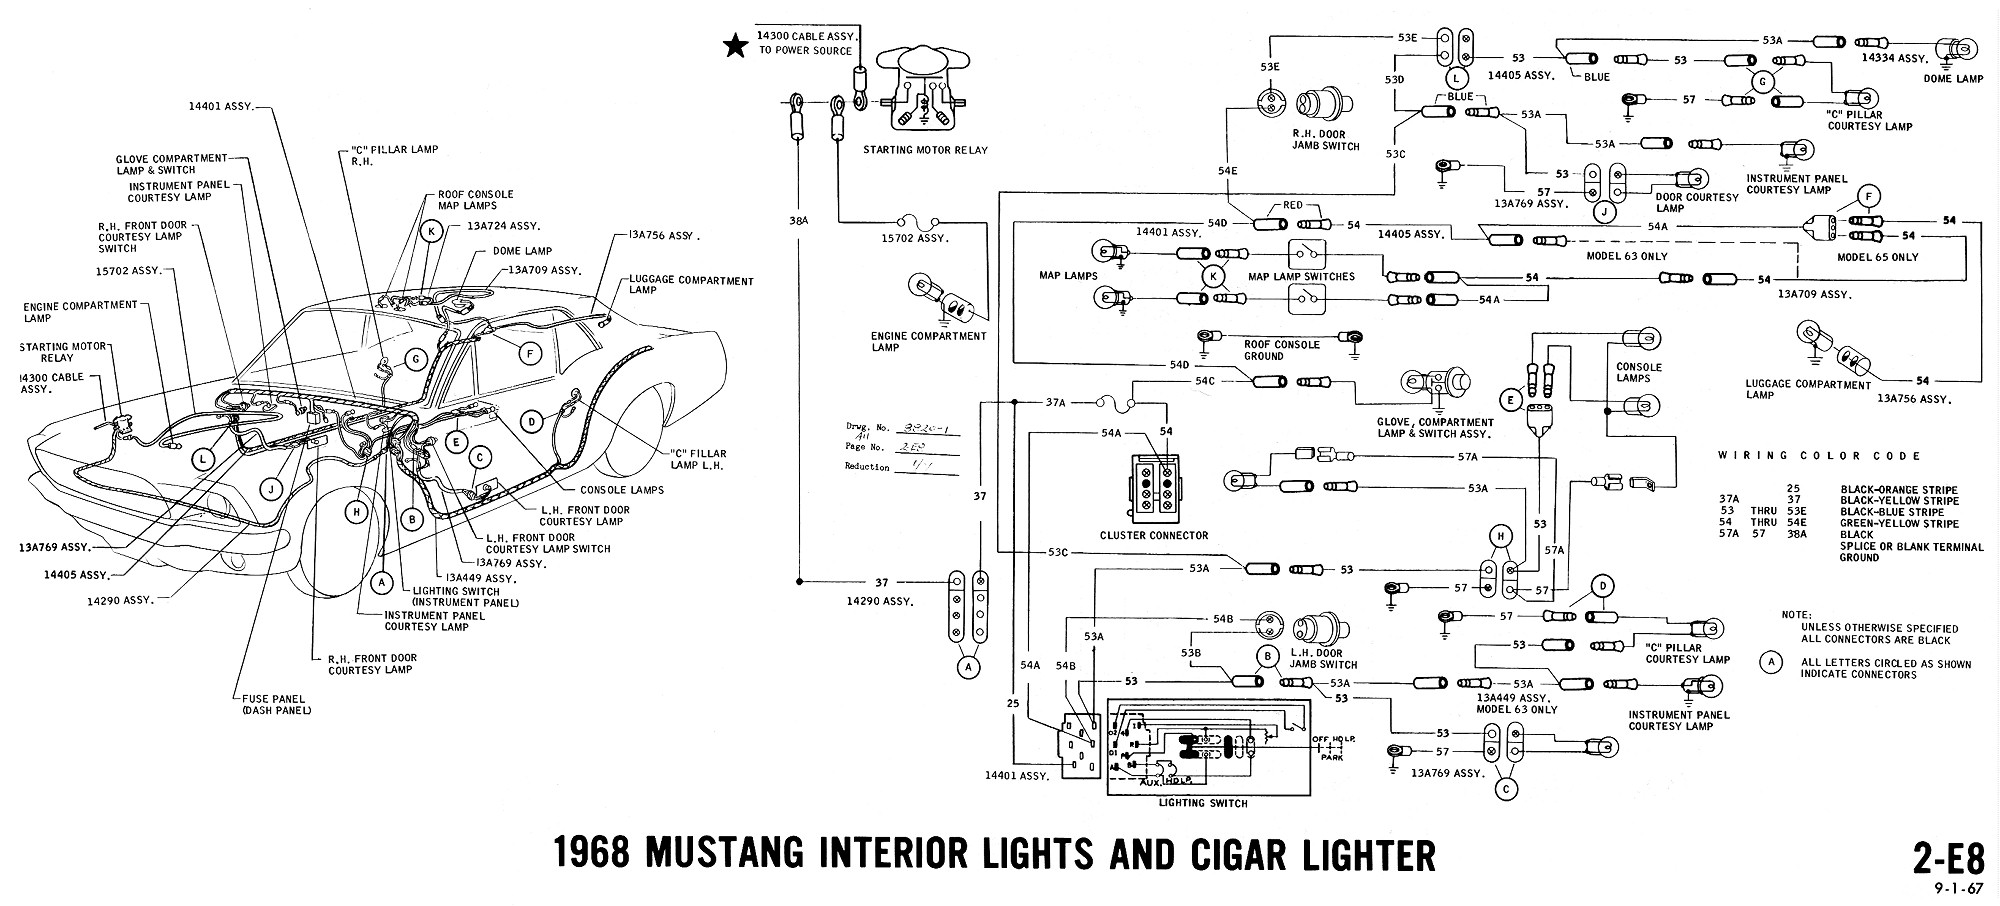 Delco Am Fm Radio Wiring Diagram additionally 1950 Chevrolet 3100 Wiring Diagram likewise Sony Xplod 1000 Watt   Wiring Diagram further Library moreover RepairGuideContent. on ford radio harness diagram